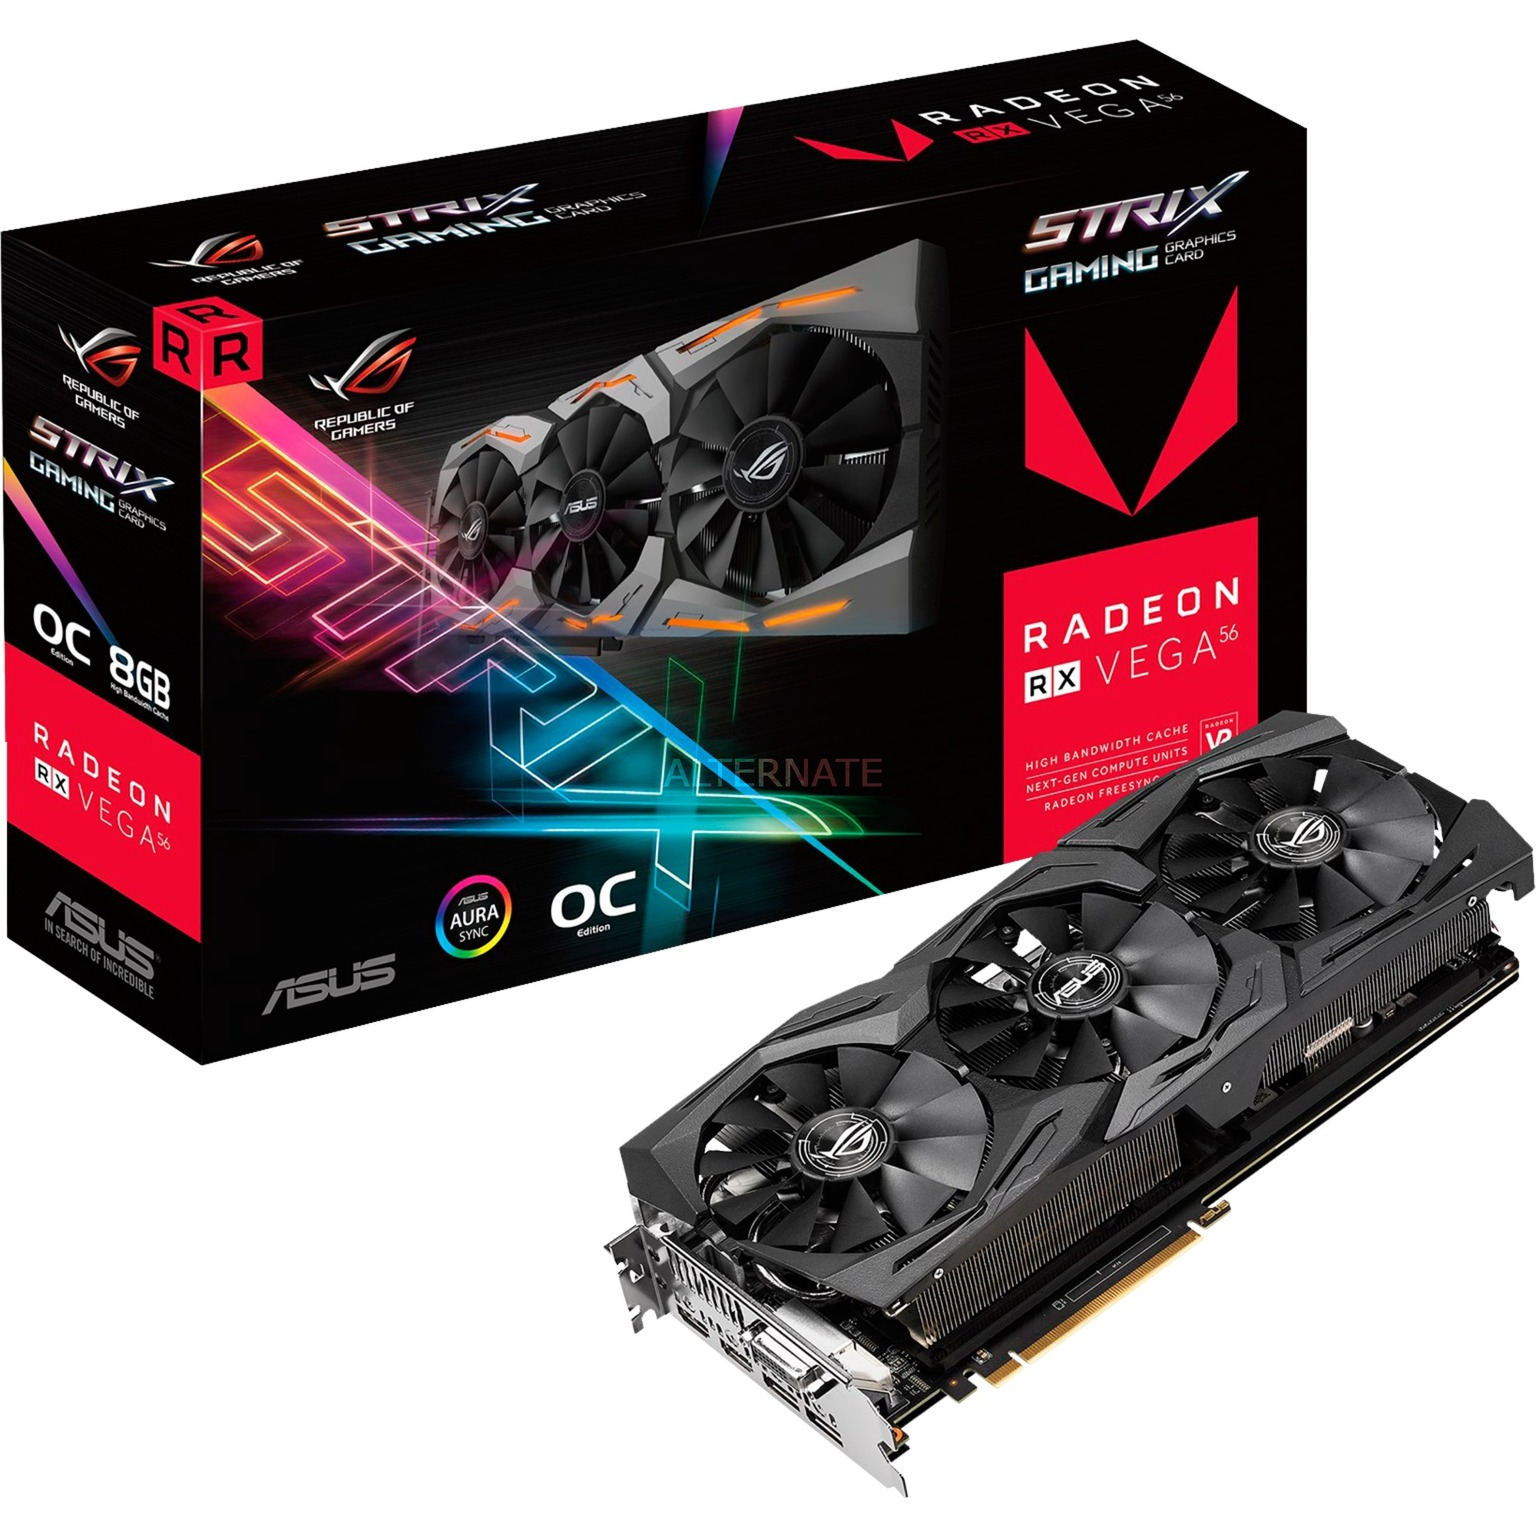 ROG-STRIX-RXVEGA64-O8G-GAMING Radeon RX Vega 64 8Go, Carte graphique